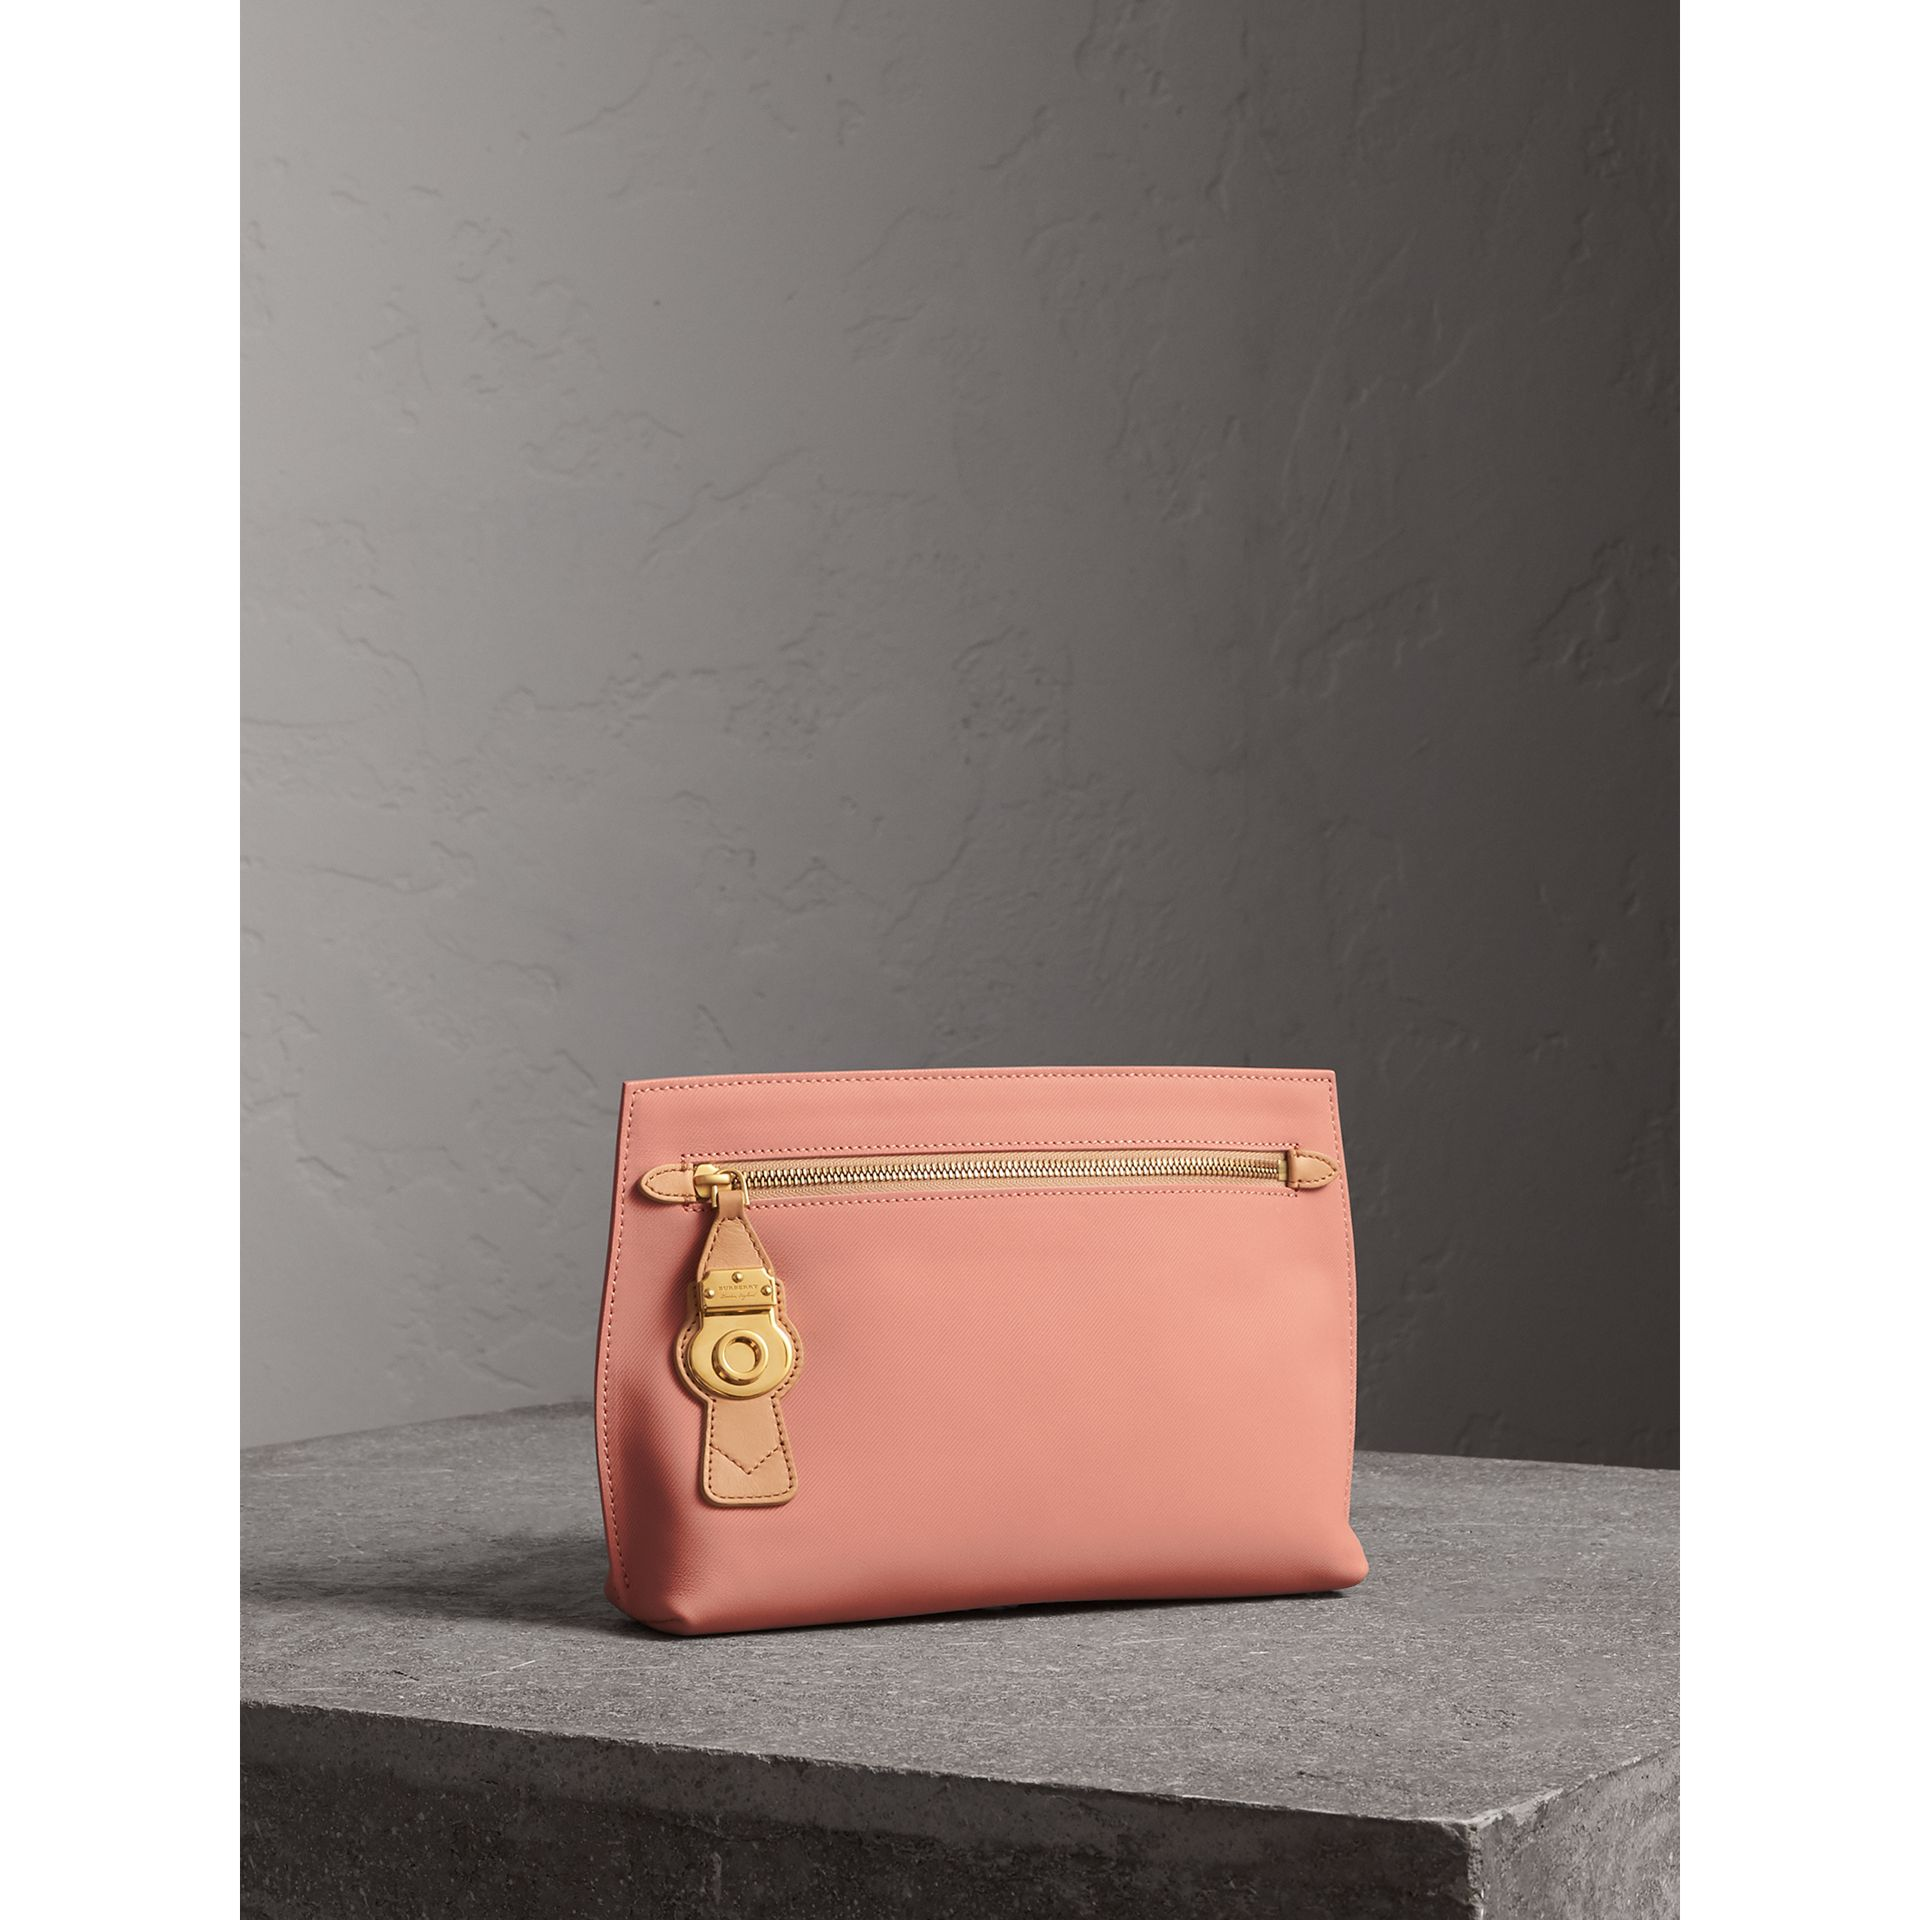 Two-tone Trench Leather Wristlet Pouch in Ash Rose/pale Clementine - Women | Burberry United Kingdom - gallery image 5